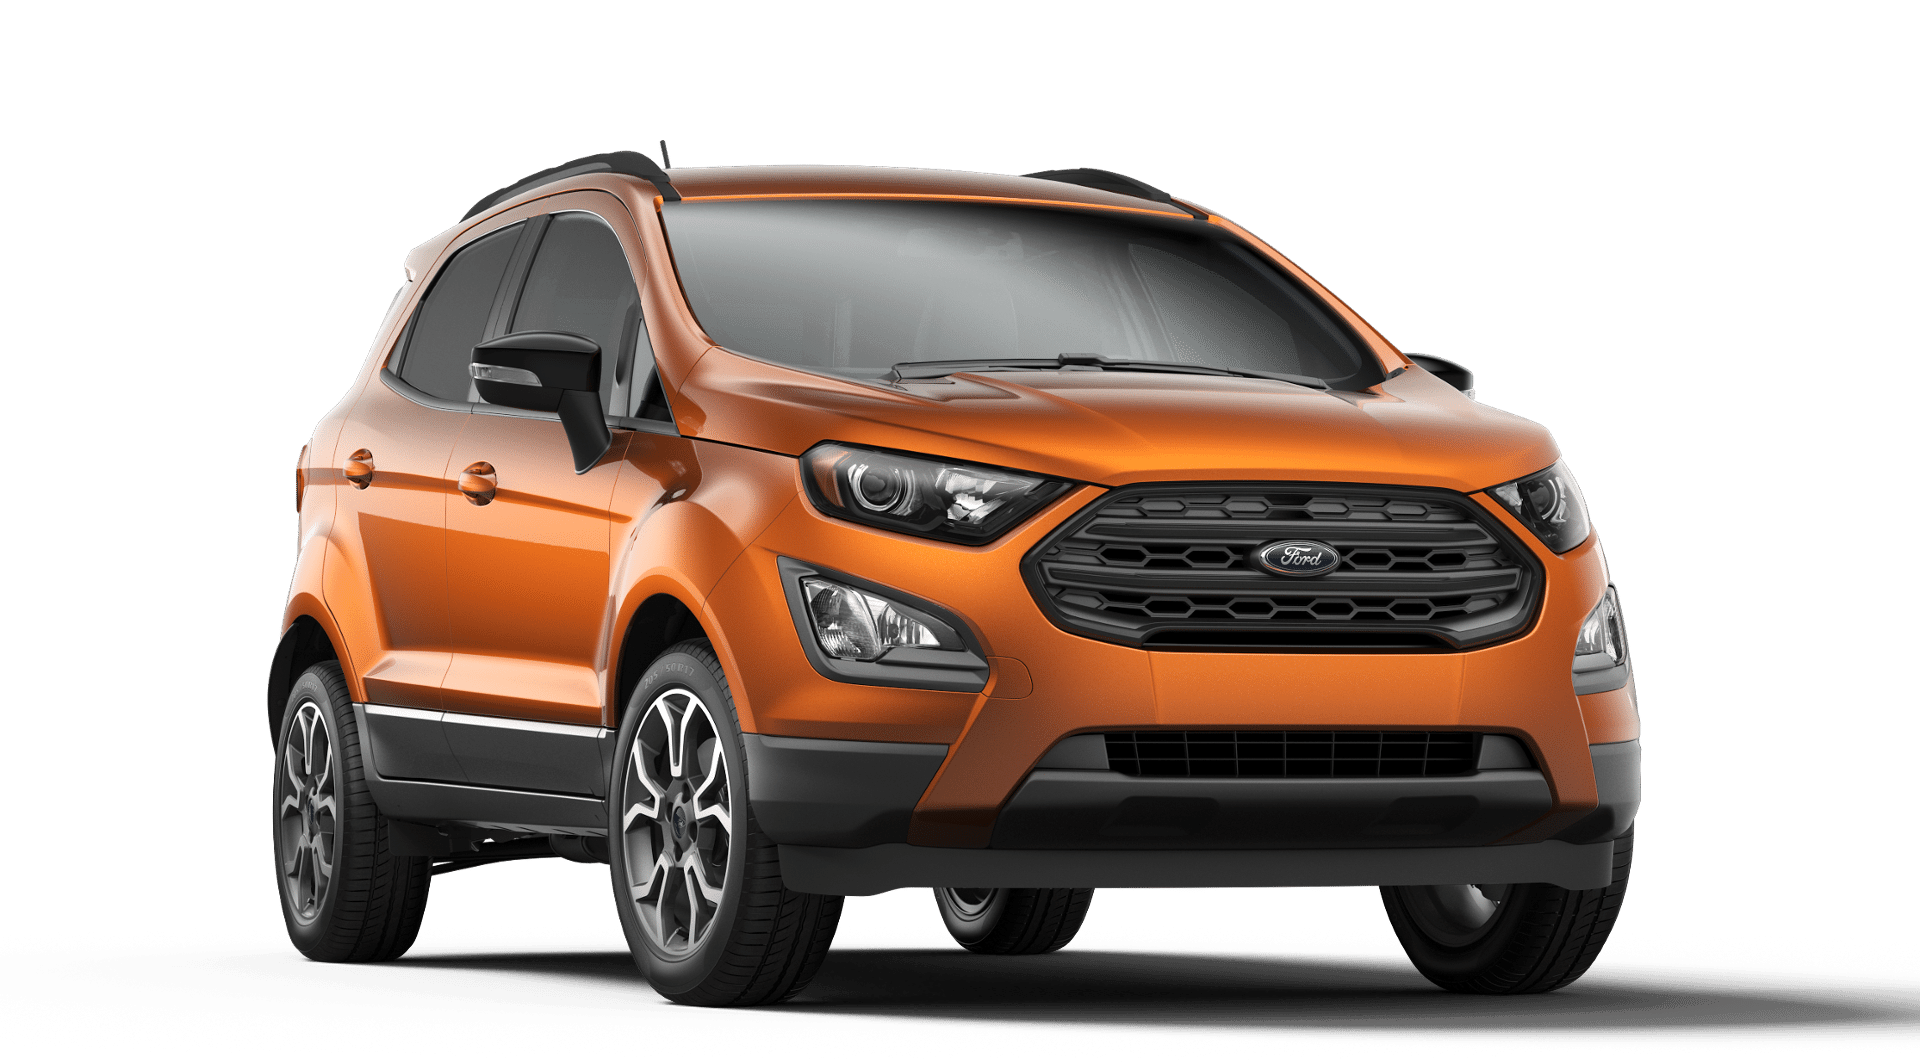 2019-Ford-EcoSport-Canyon-Ridge-Exterior-Color_o